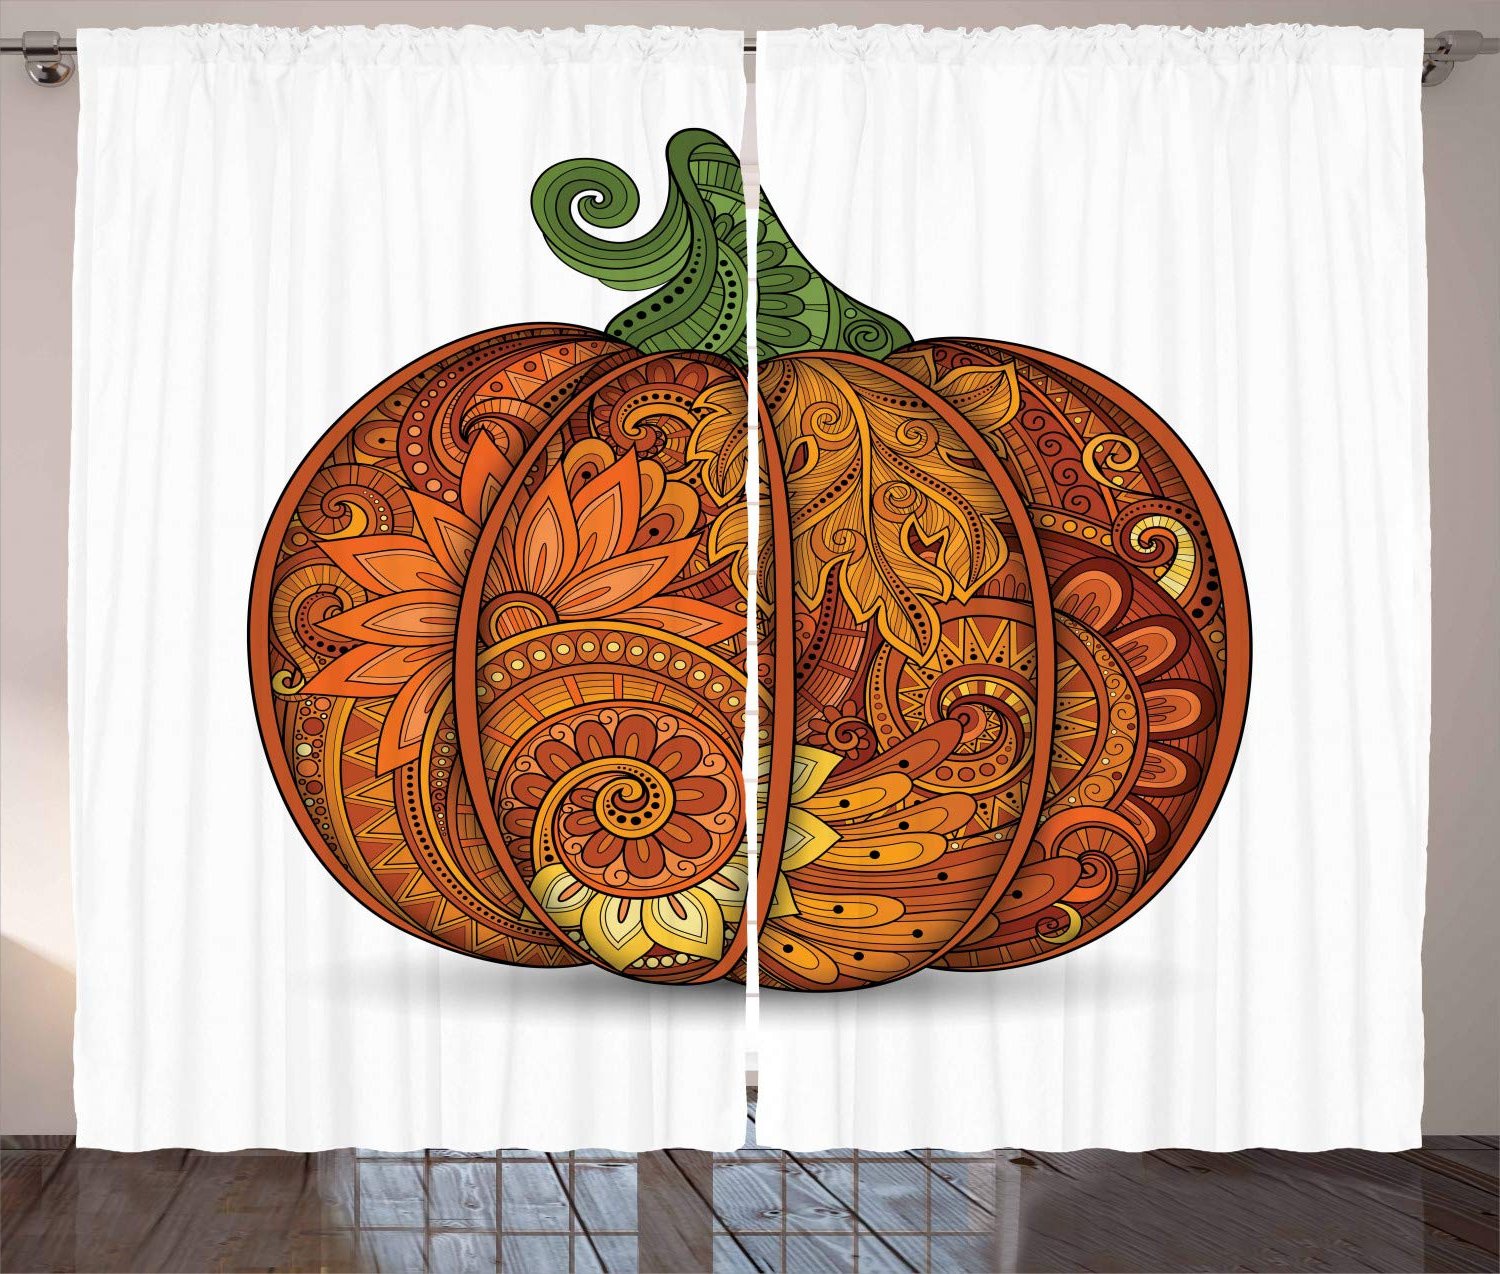 Ambesonne Vegetable Curtains, Thanksgiving Symbol Ethnic Pumpkin With Flowers Paisley Mandala Forms, Living Room Bedroom Window Drapes 2 Panel Set, Within Newest Window Curtains Sets With Colorful Marketplace Vegetable And Sunflower Print (View 15 of 20)